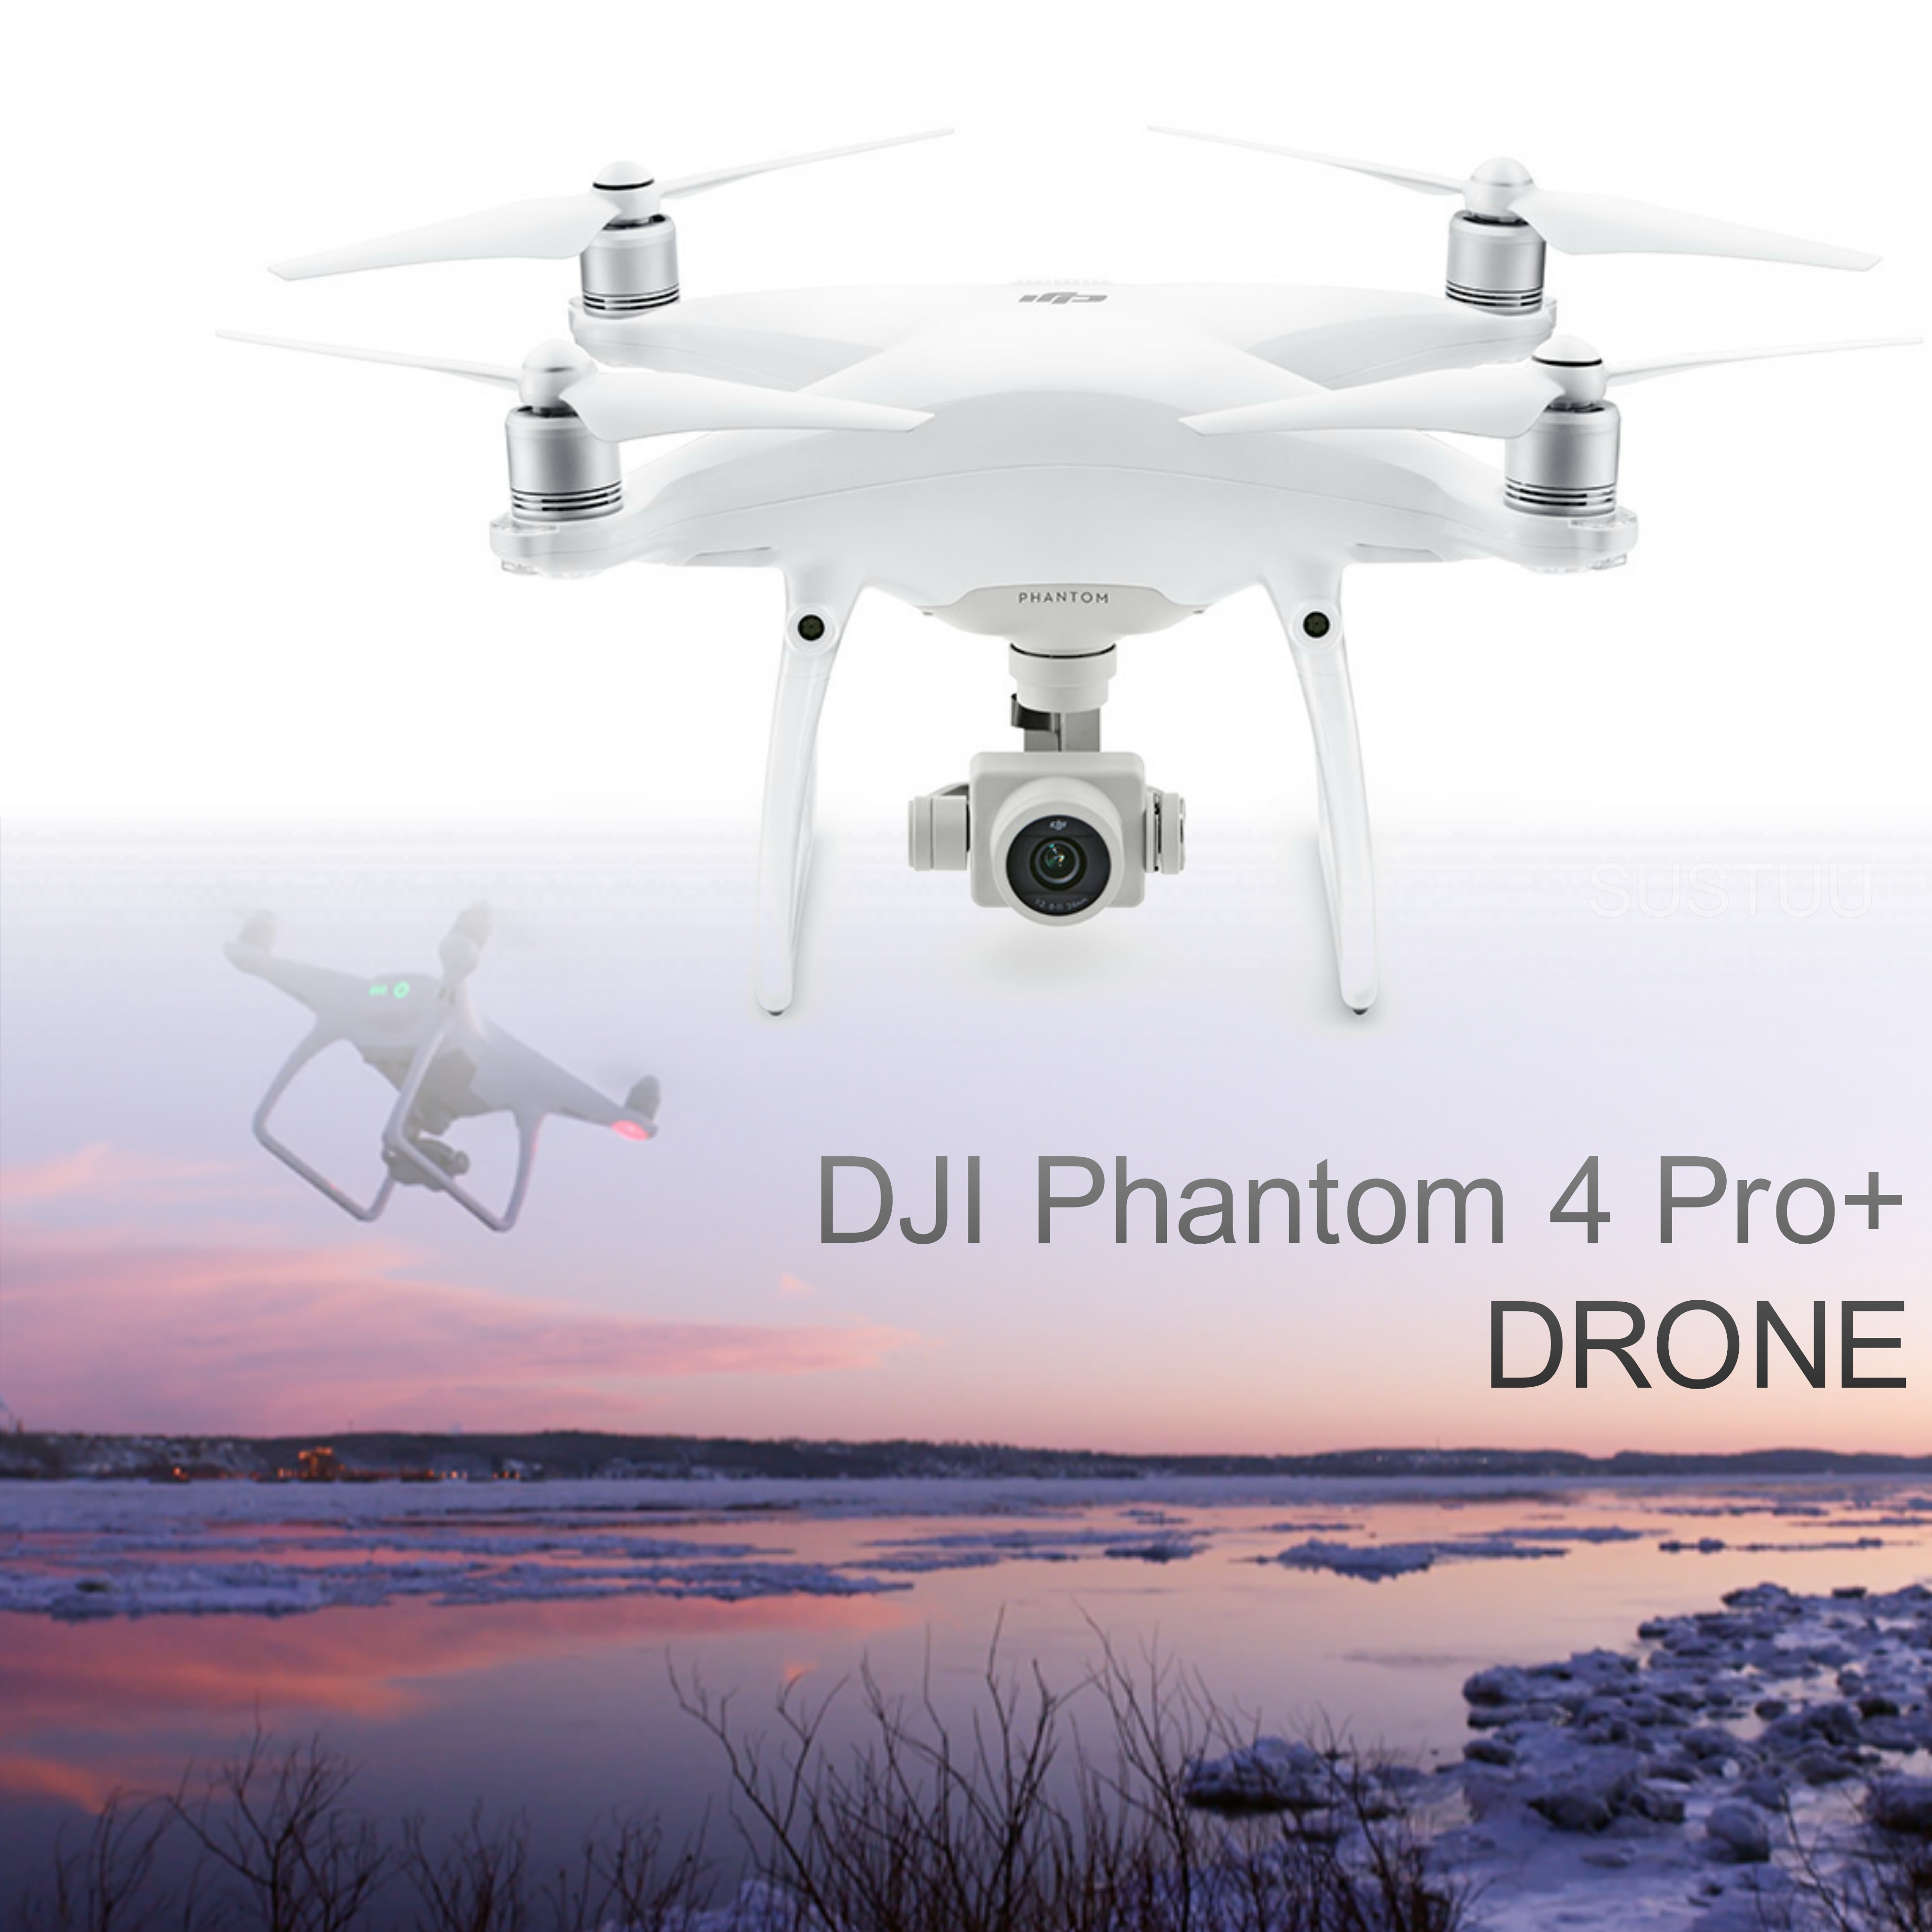 DJI Phantom 4 PRO Plus Quadcopter Drone|20MP|4K 60fps Camera|CP.PT.000548|White